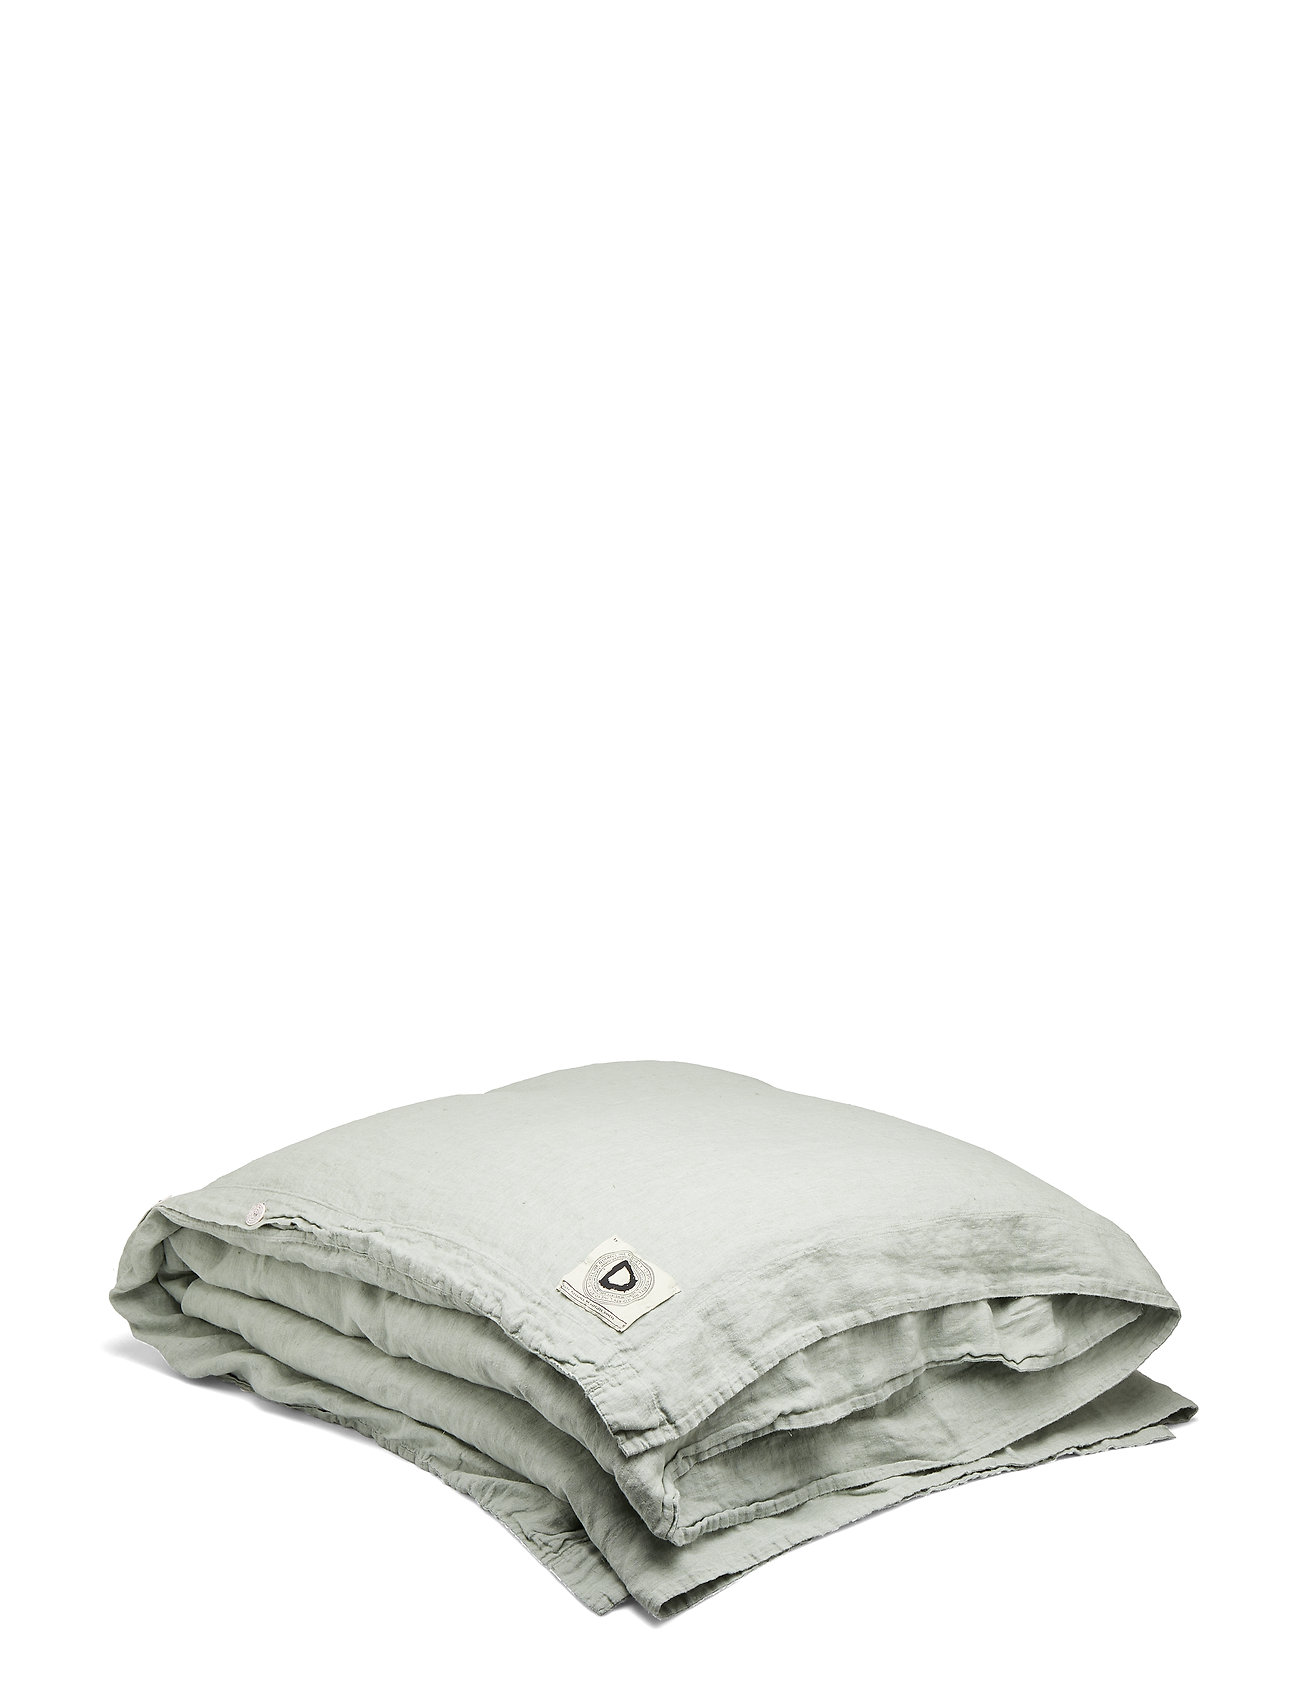 Dirty Linen Animeaux duvet cover - SALT SEA